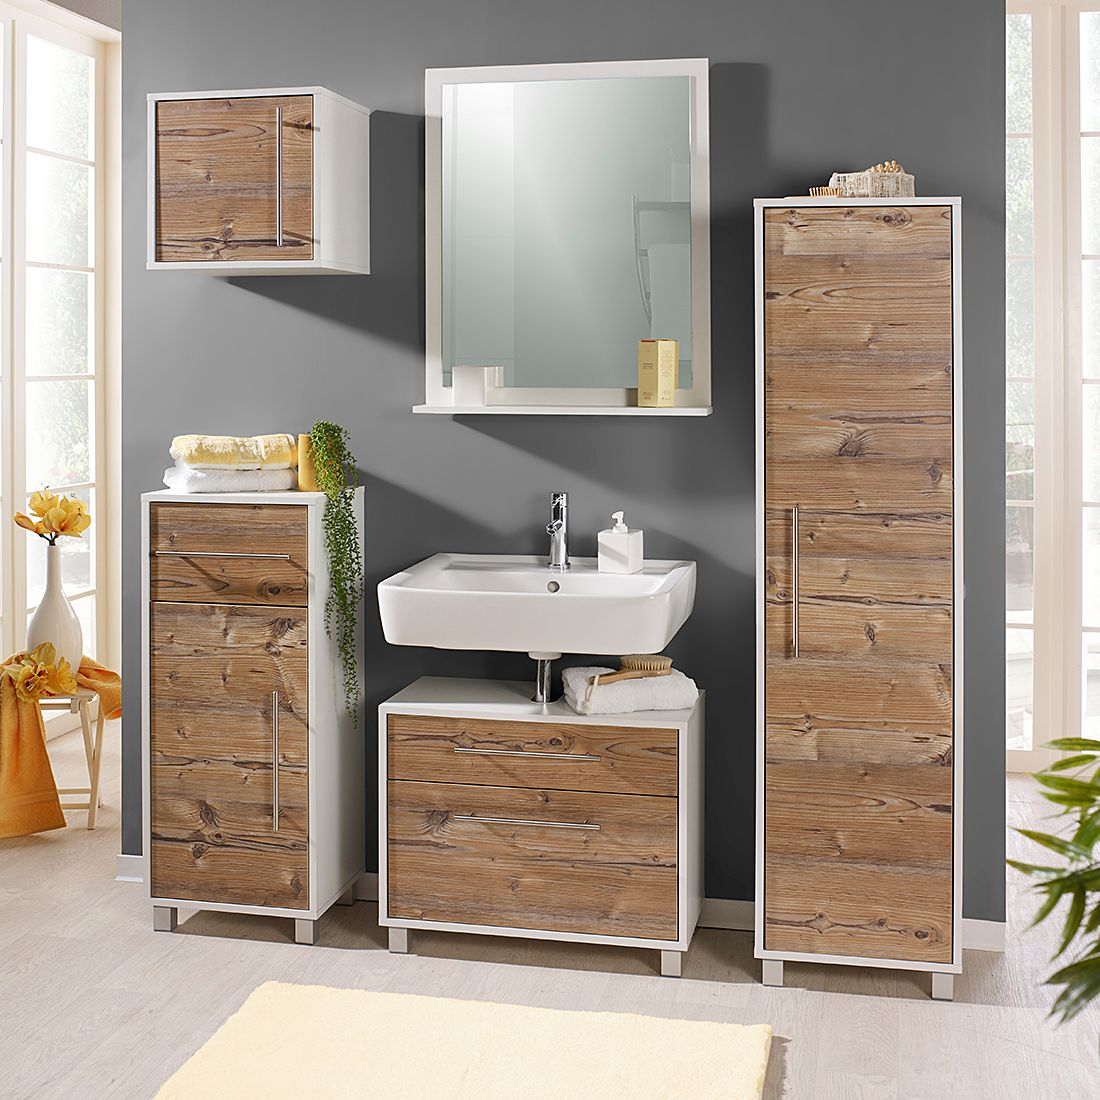 hochschrank moncton silberfichte dekor wei kommode highboard anrichte ebay. Black Bedroom Furniture Sets. Home Design Ideas